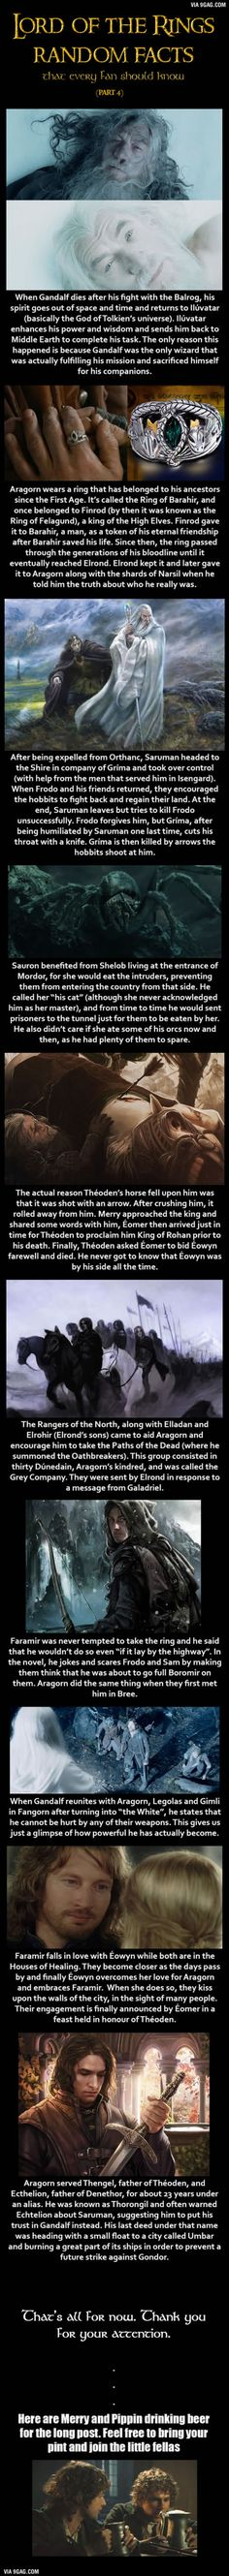 Here are some Lord of the Rings random facts (Part 4)